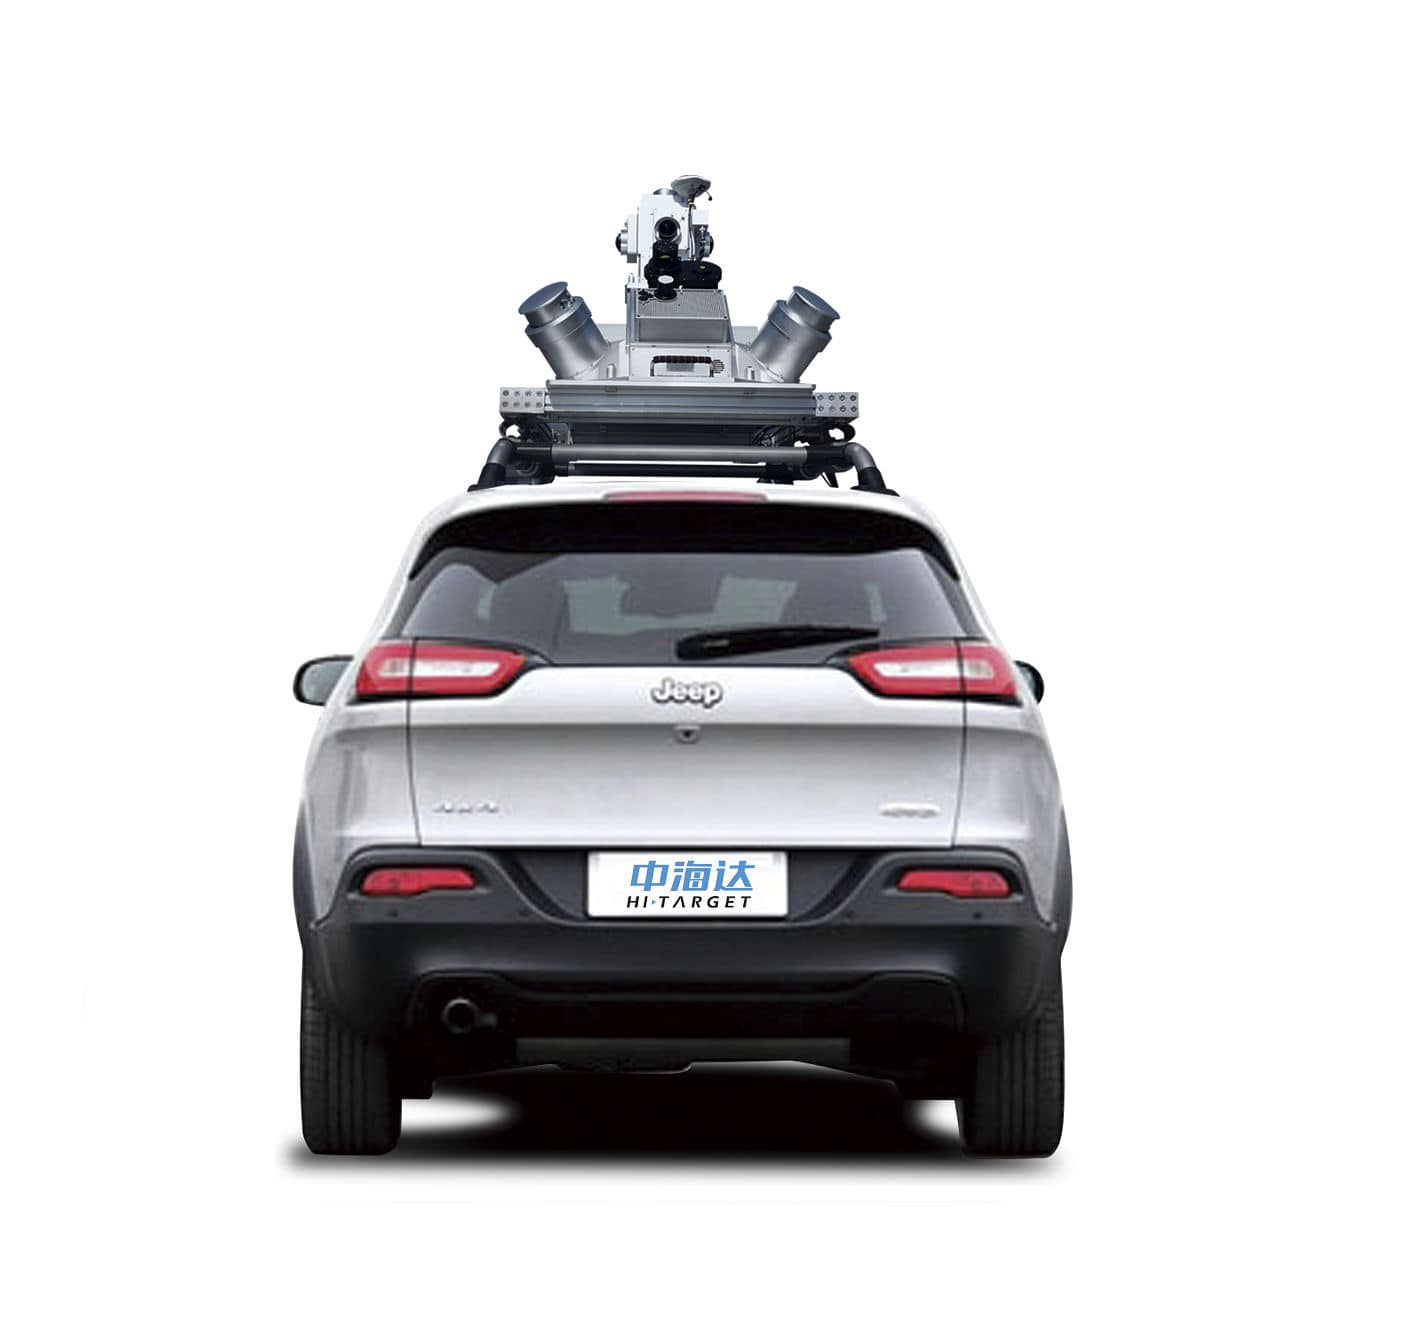 HiScan-C Mobile Mapping System - Hi-Target